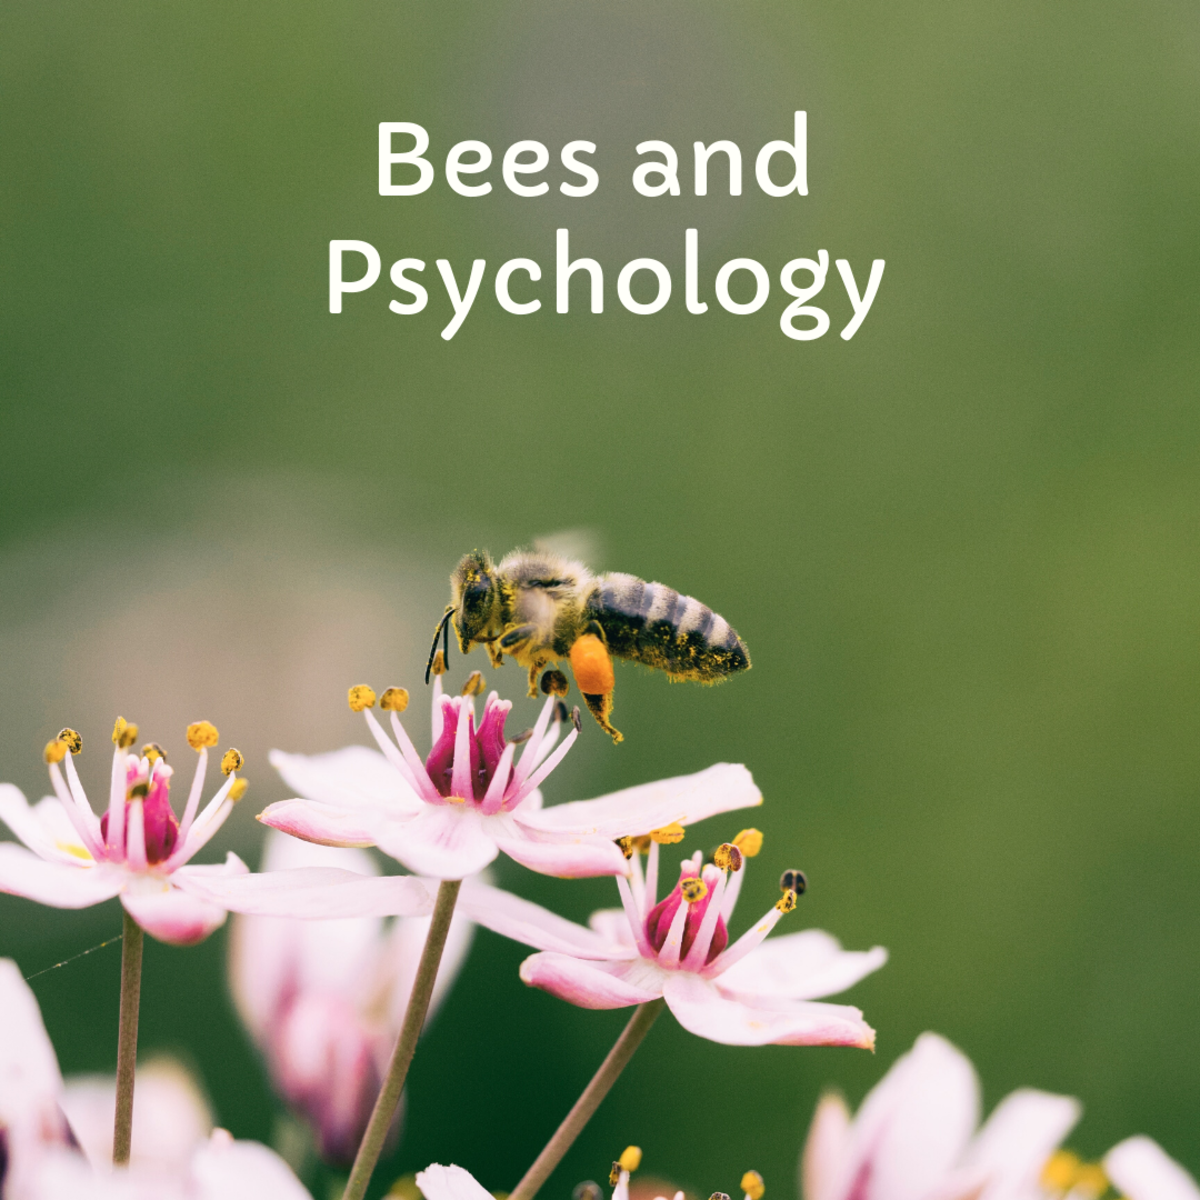 Being chased by bees could mean you are anxious about something.